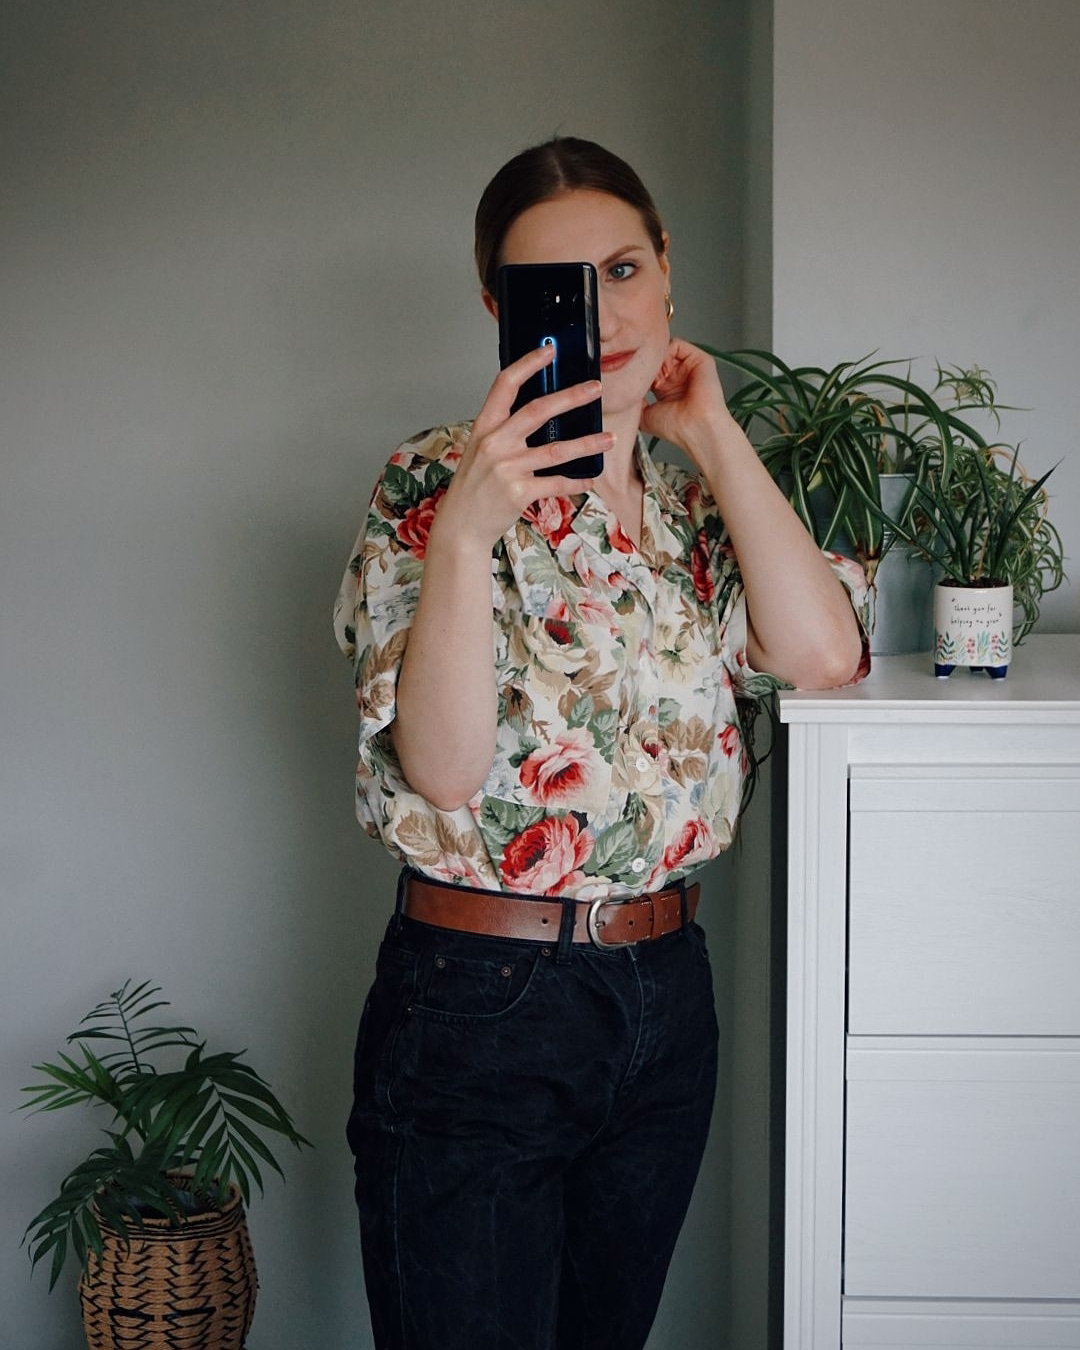 Amy is wearing a vintage floral shirt tucked into black high waisted jeans